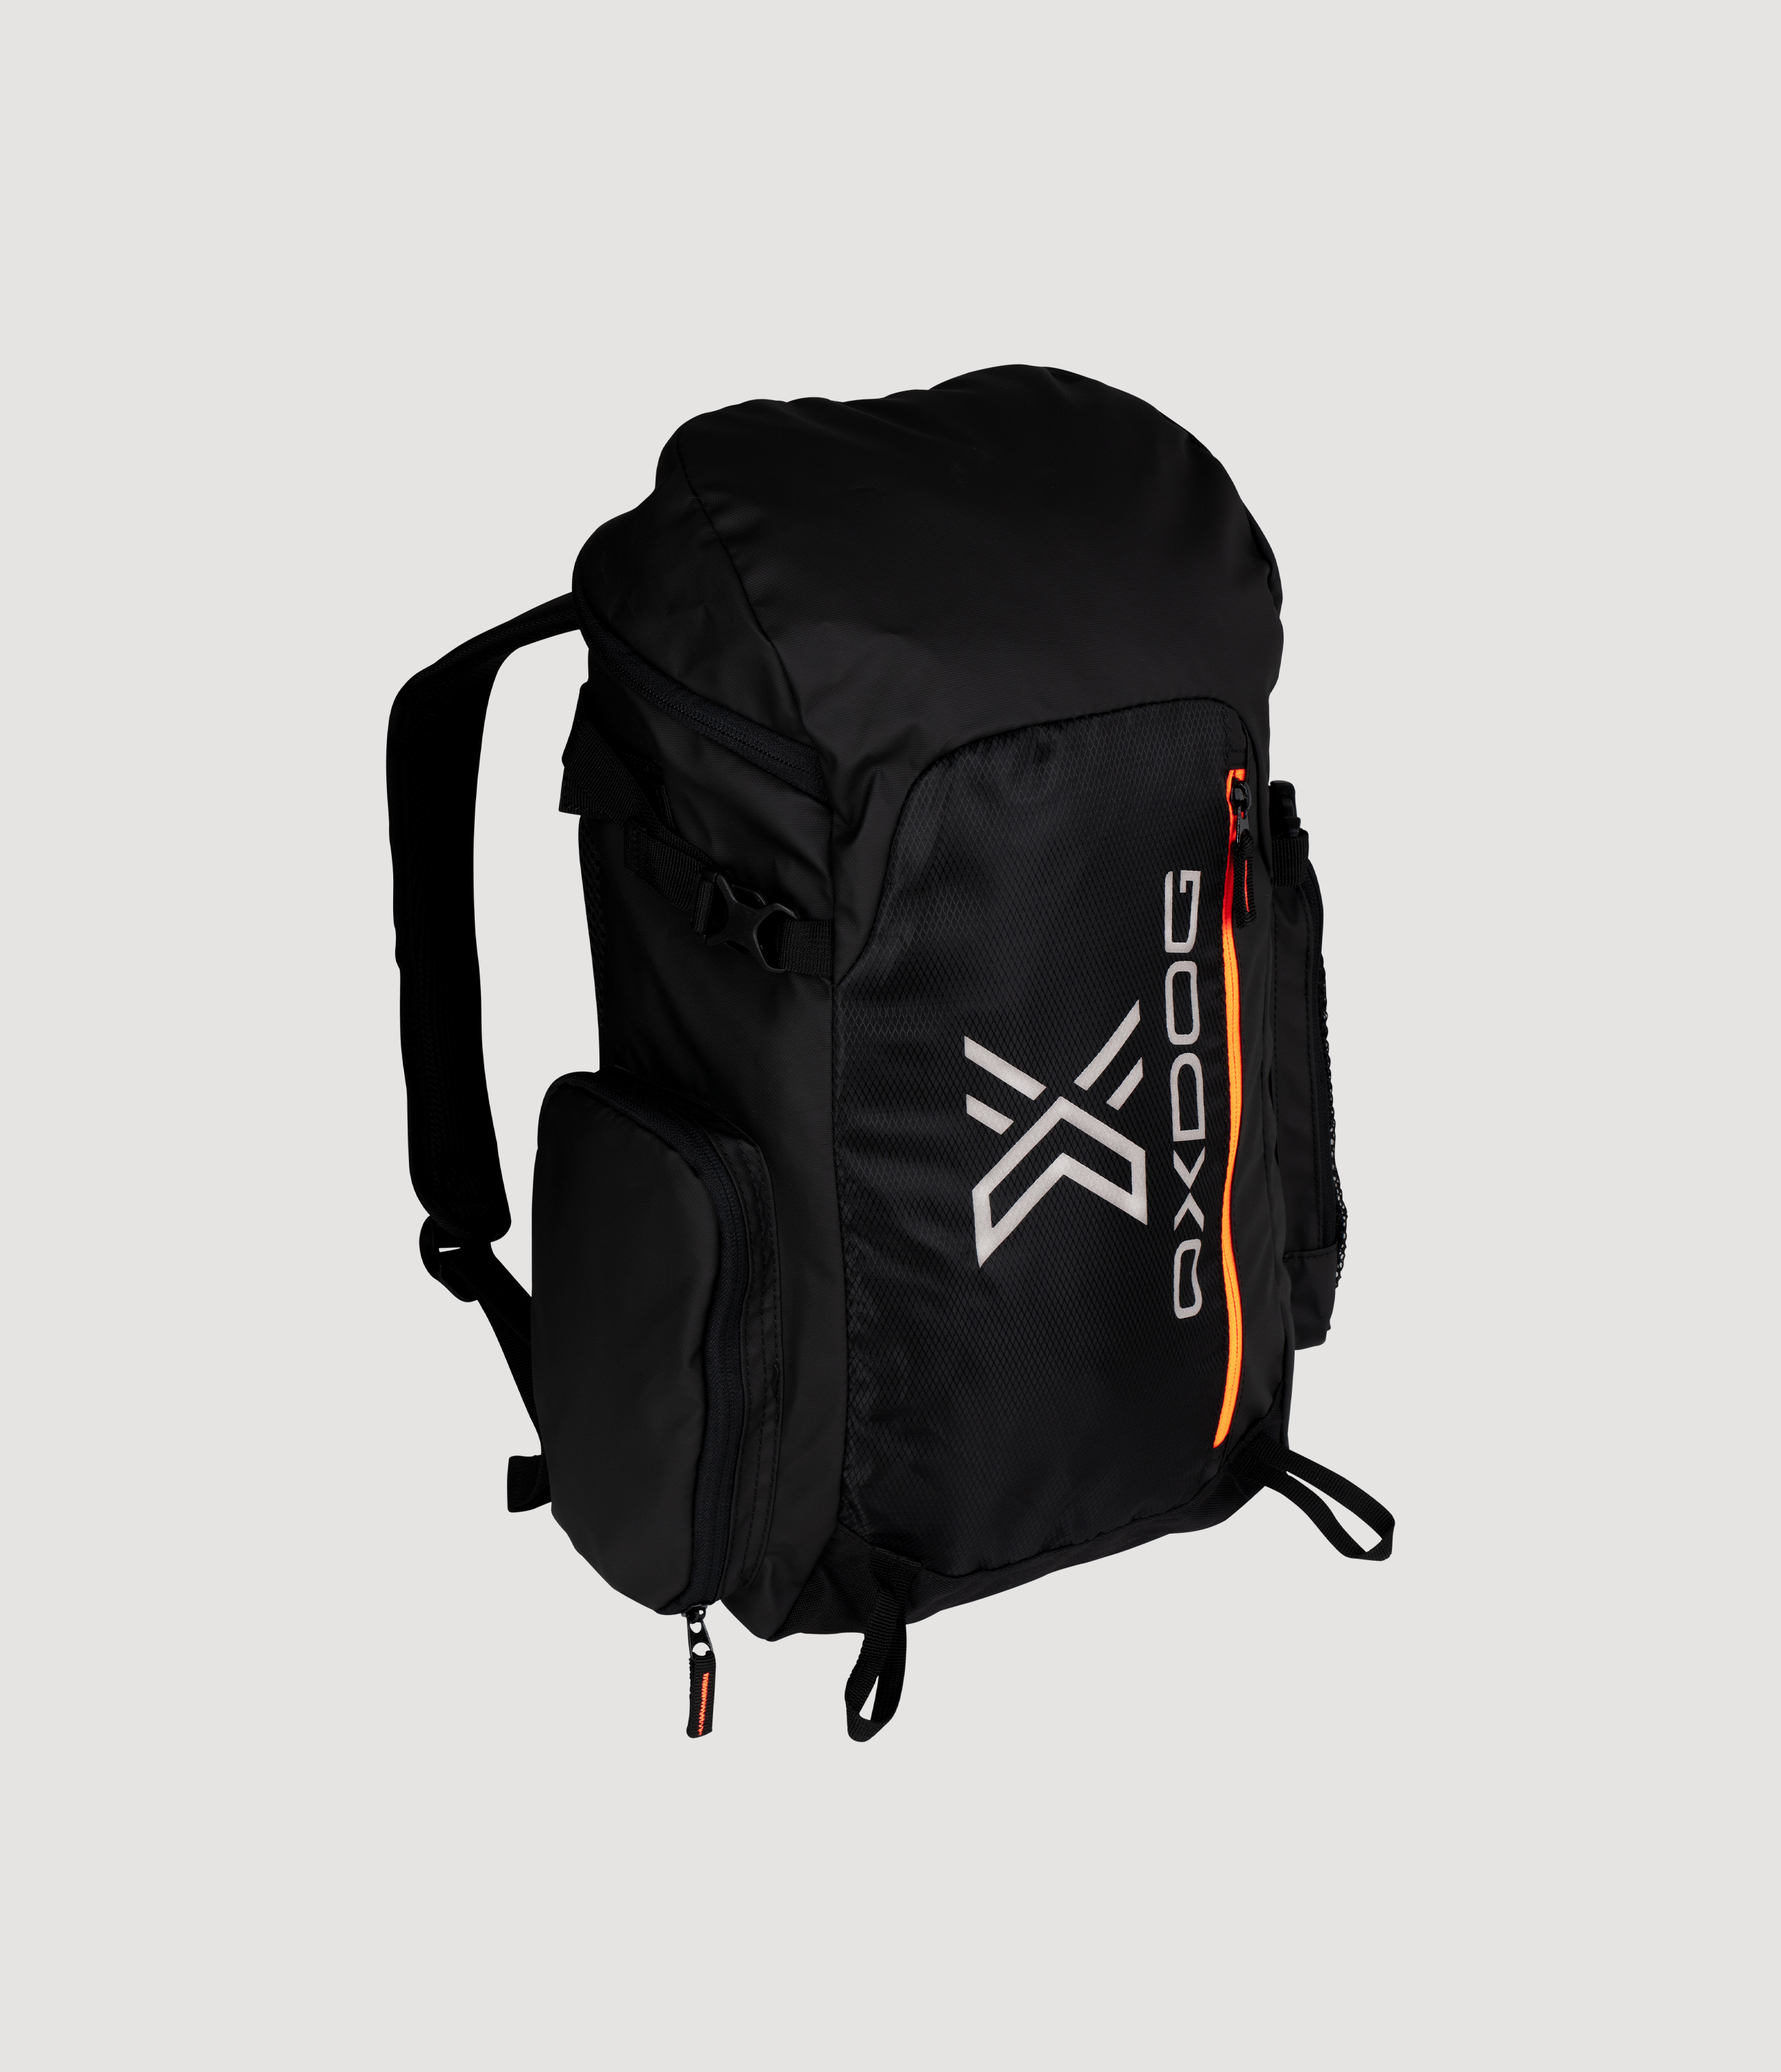 OX1 Stick Backpack Front